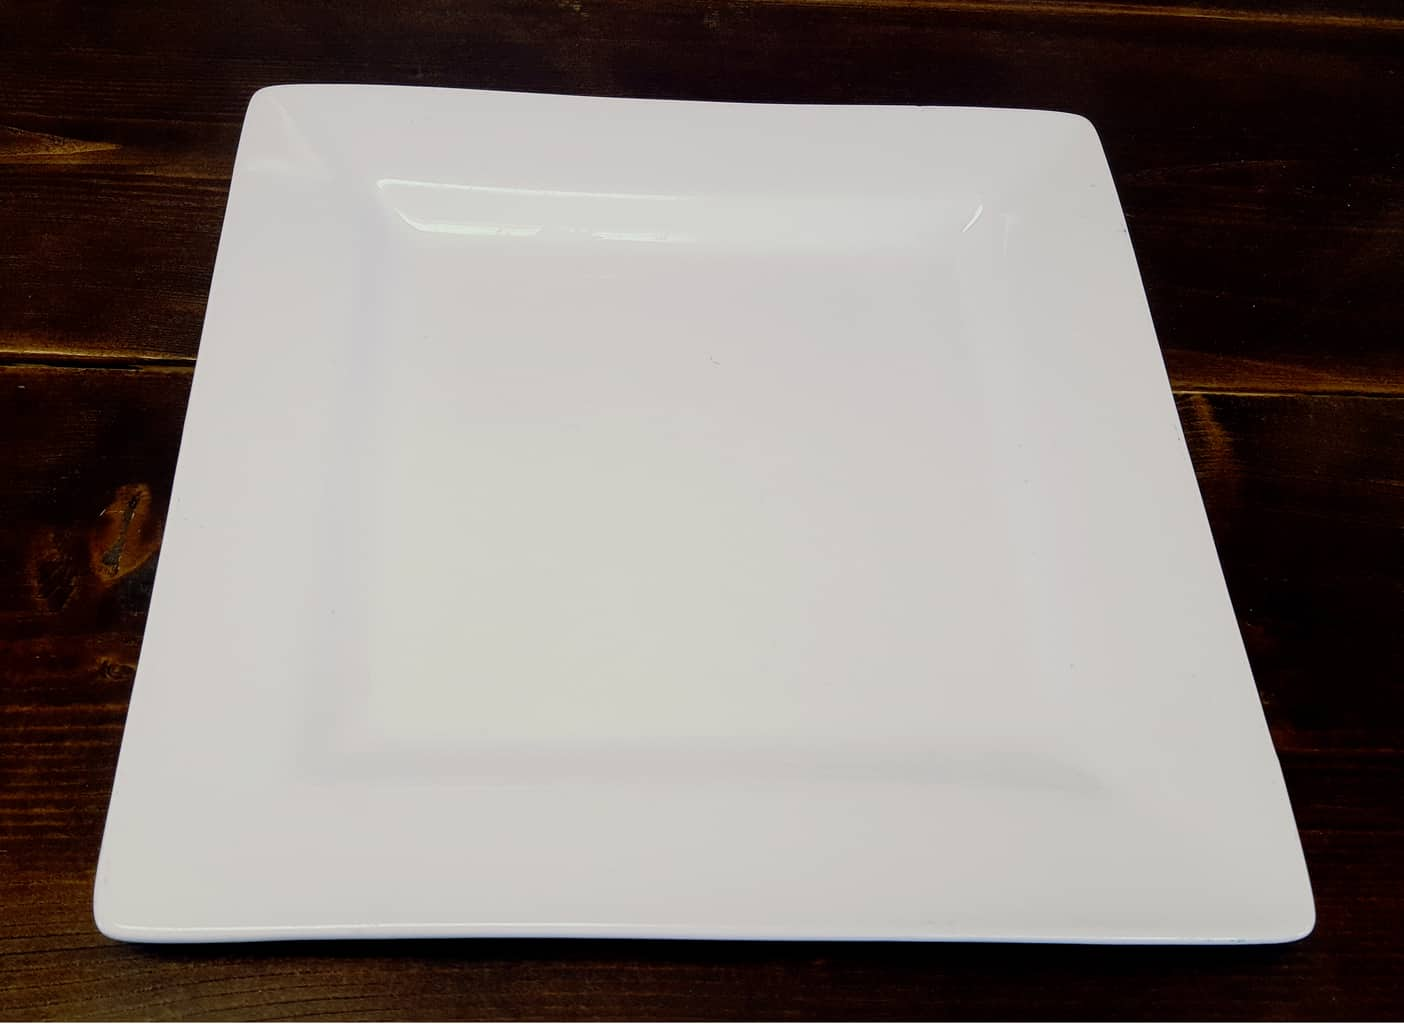 ... Dinner Plate - Square ... & Square - White Plates - Front Range Event Rental